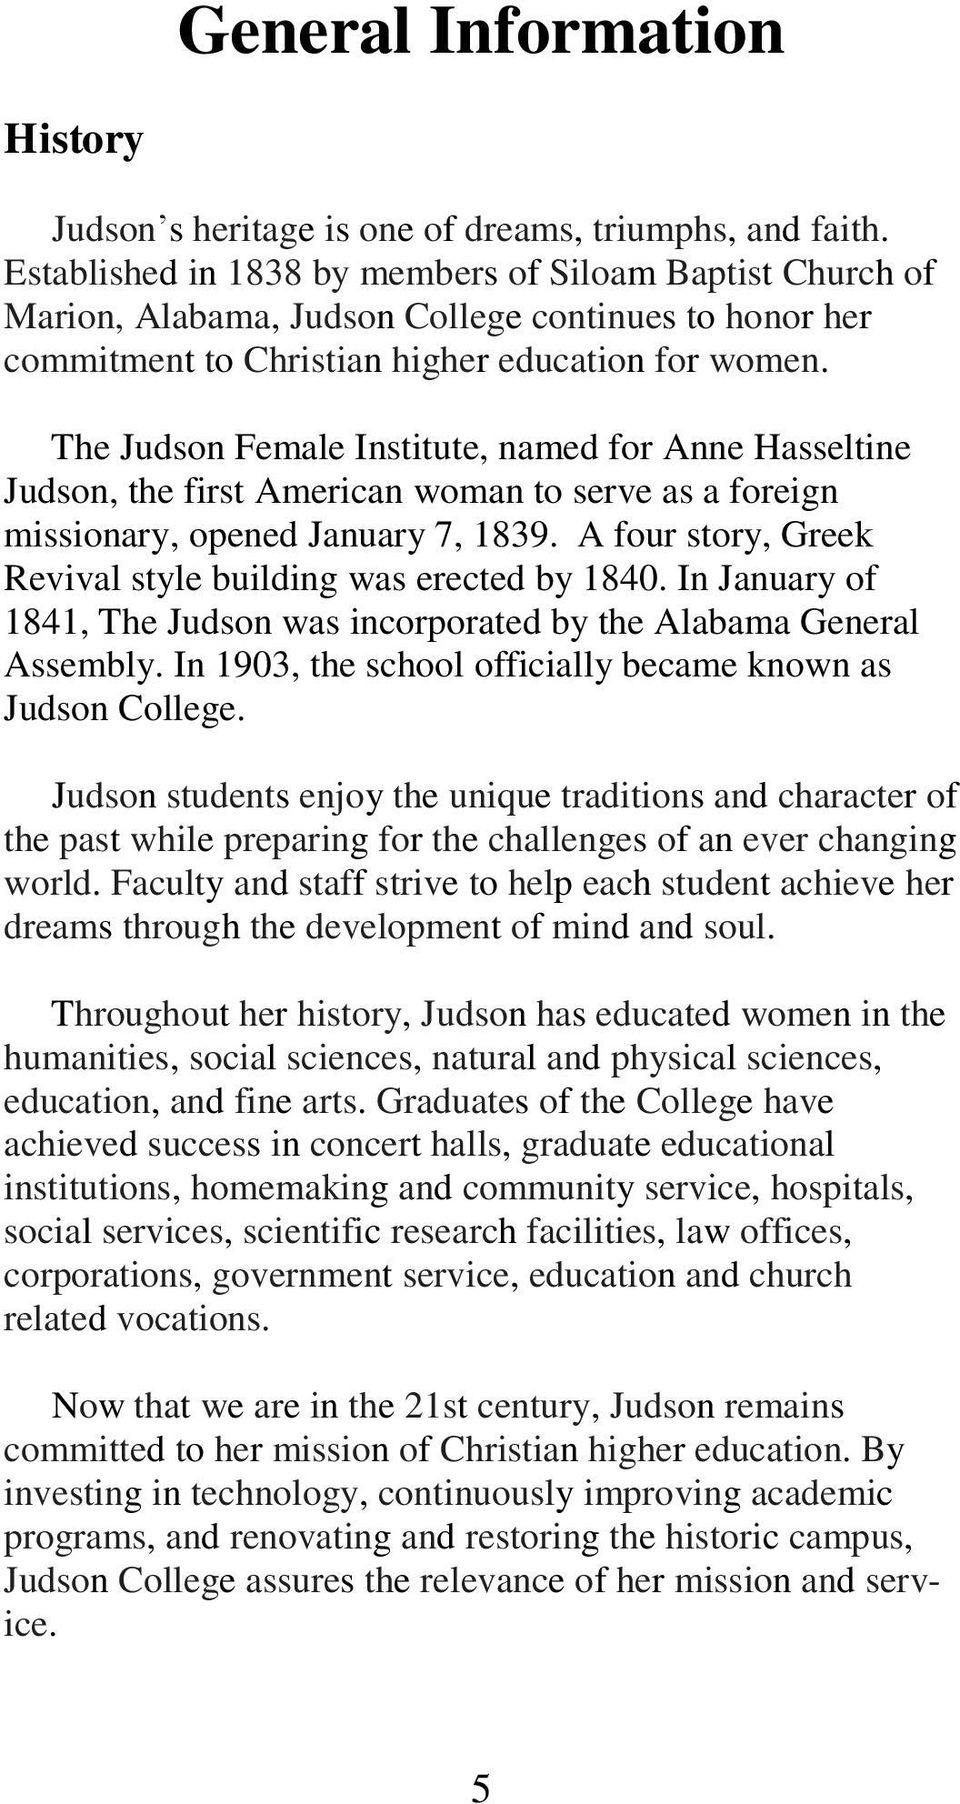 The Judson Female Institute, named for Anne Hasseltine Judson, the first American woman to serve as a foreign missionary, opened January 7, 1839.